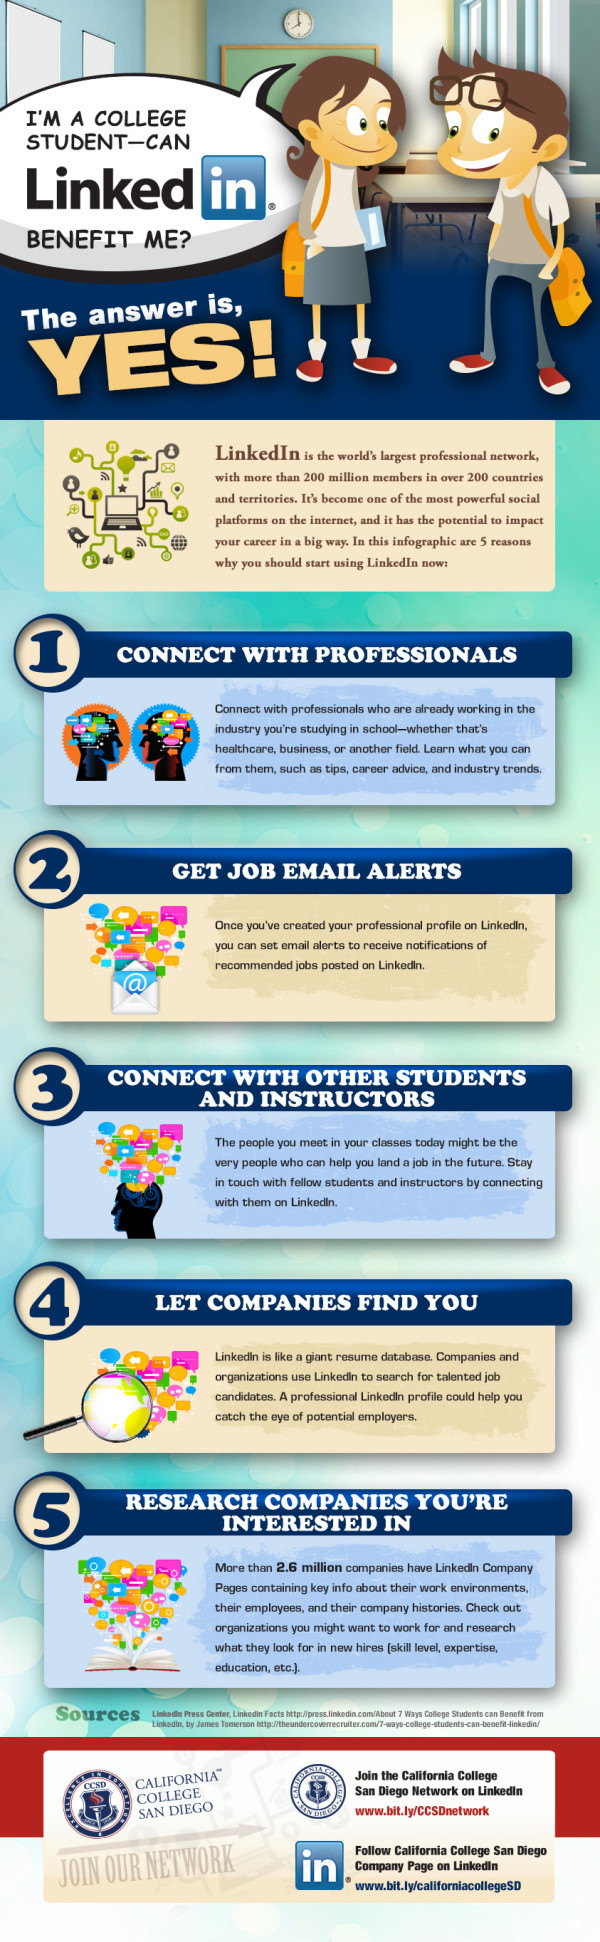 5 Ways LinkedIn Can Benefit College Students